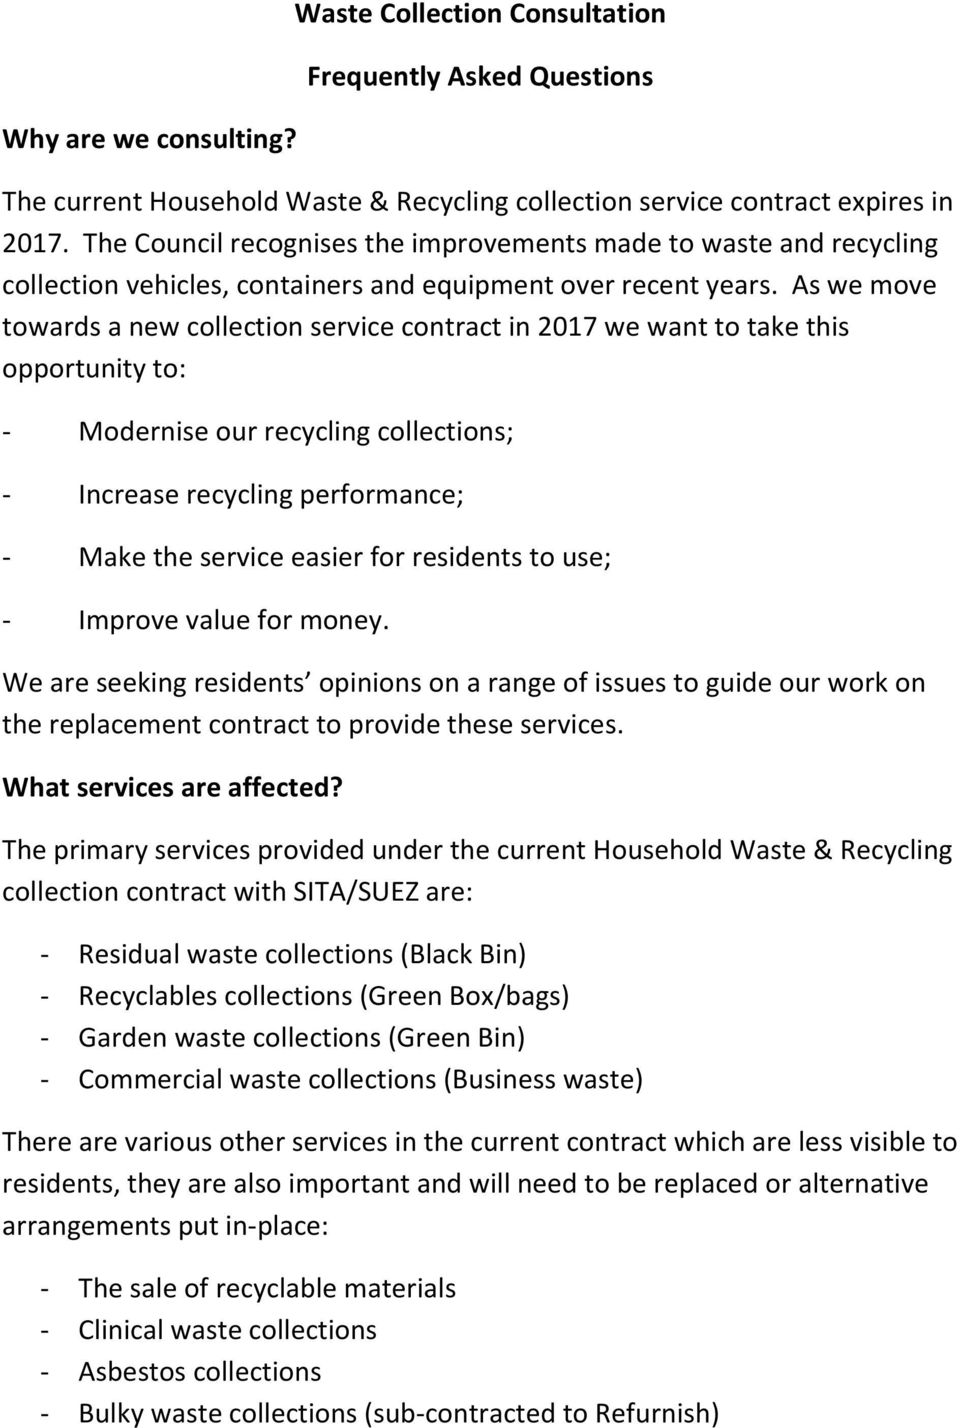 As we move towards a new collection service contract in 2017 we want to take this opportunity to: - Modernise our recycling collections; - Increase recycling performance; - Make the service easier